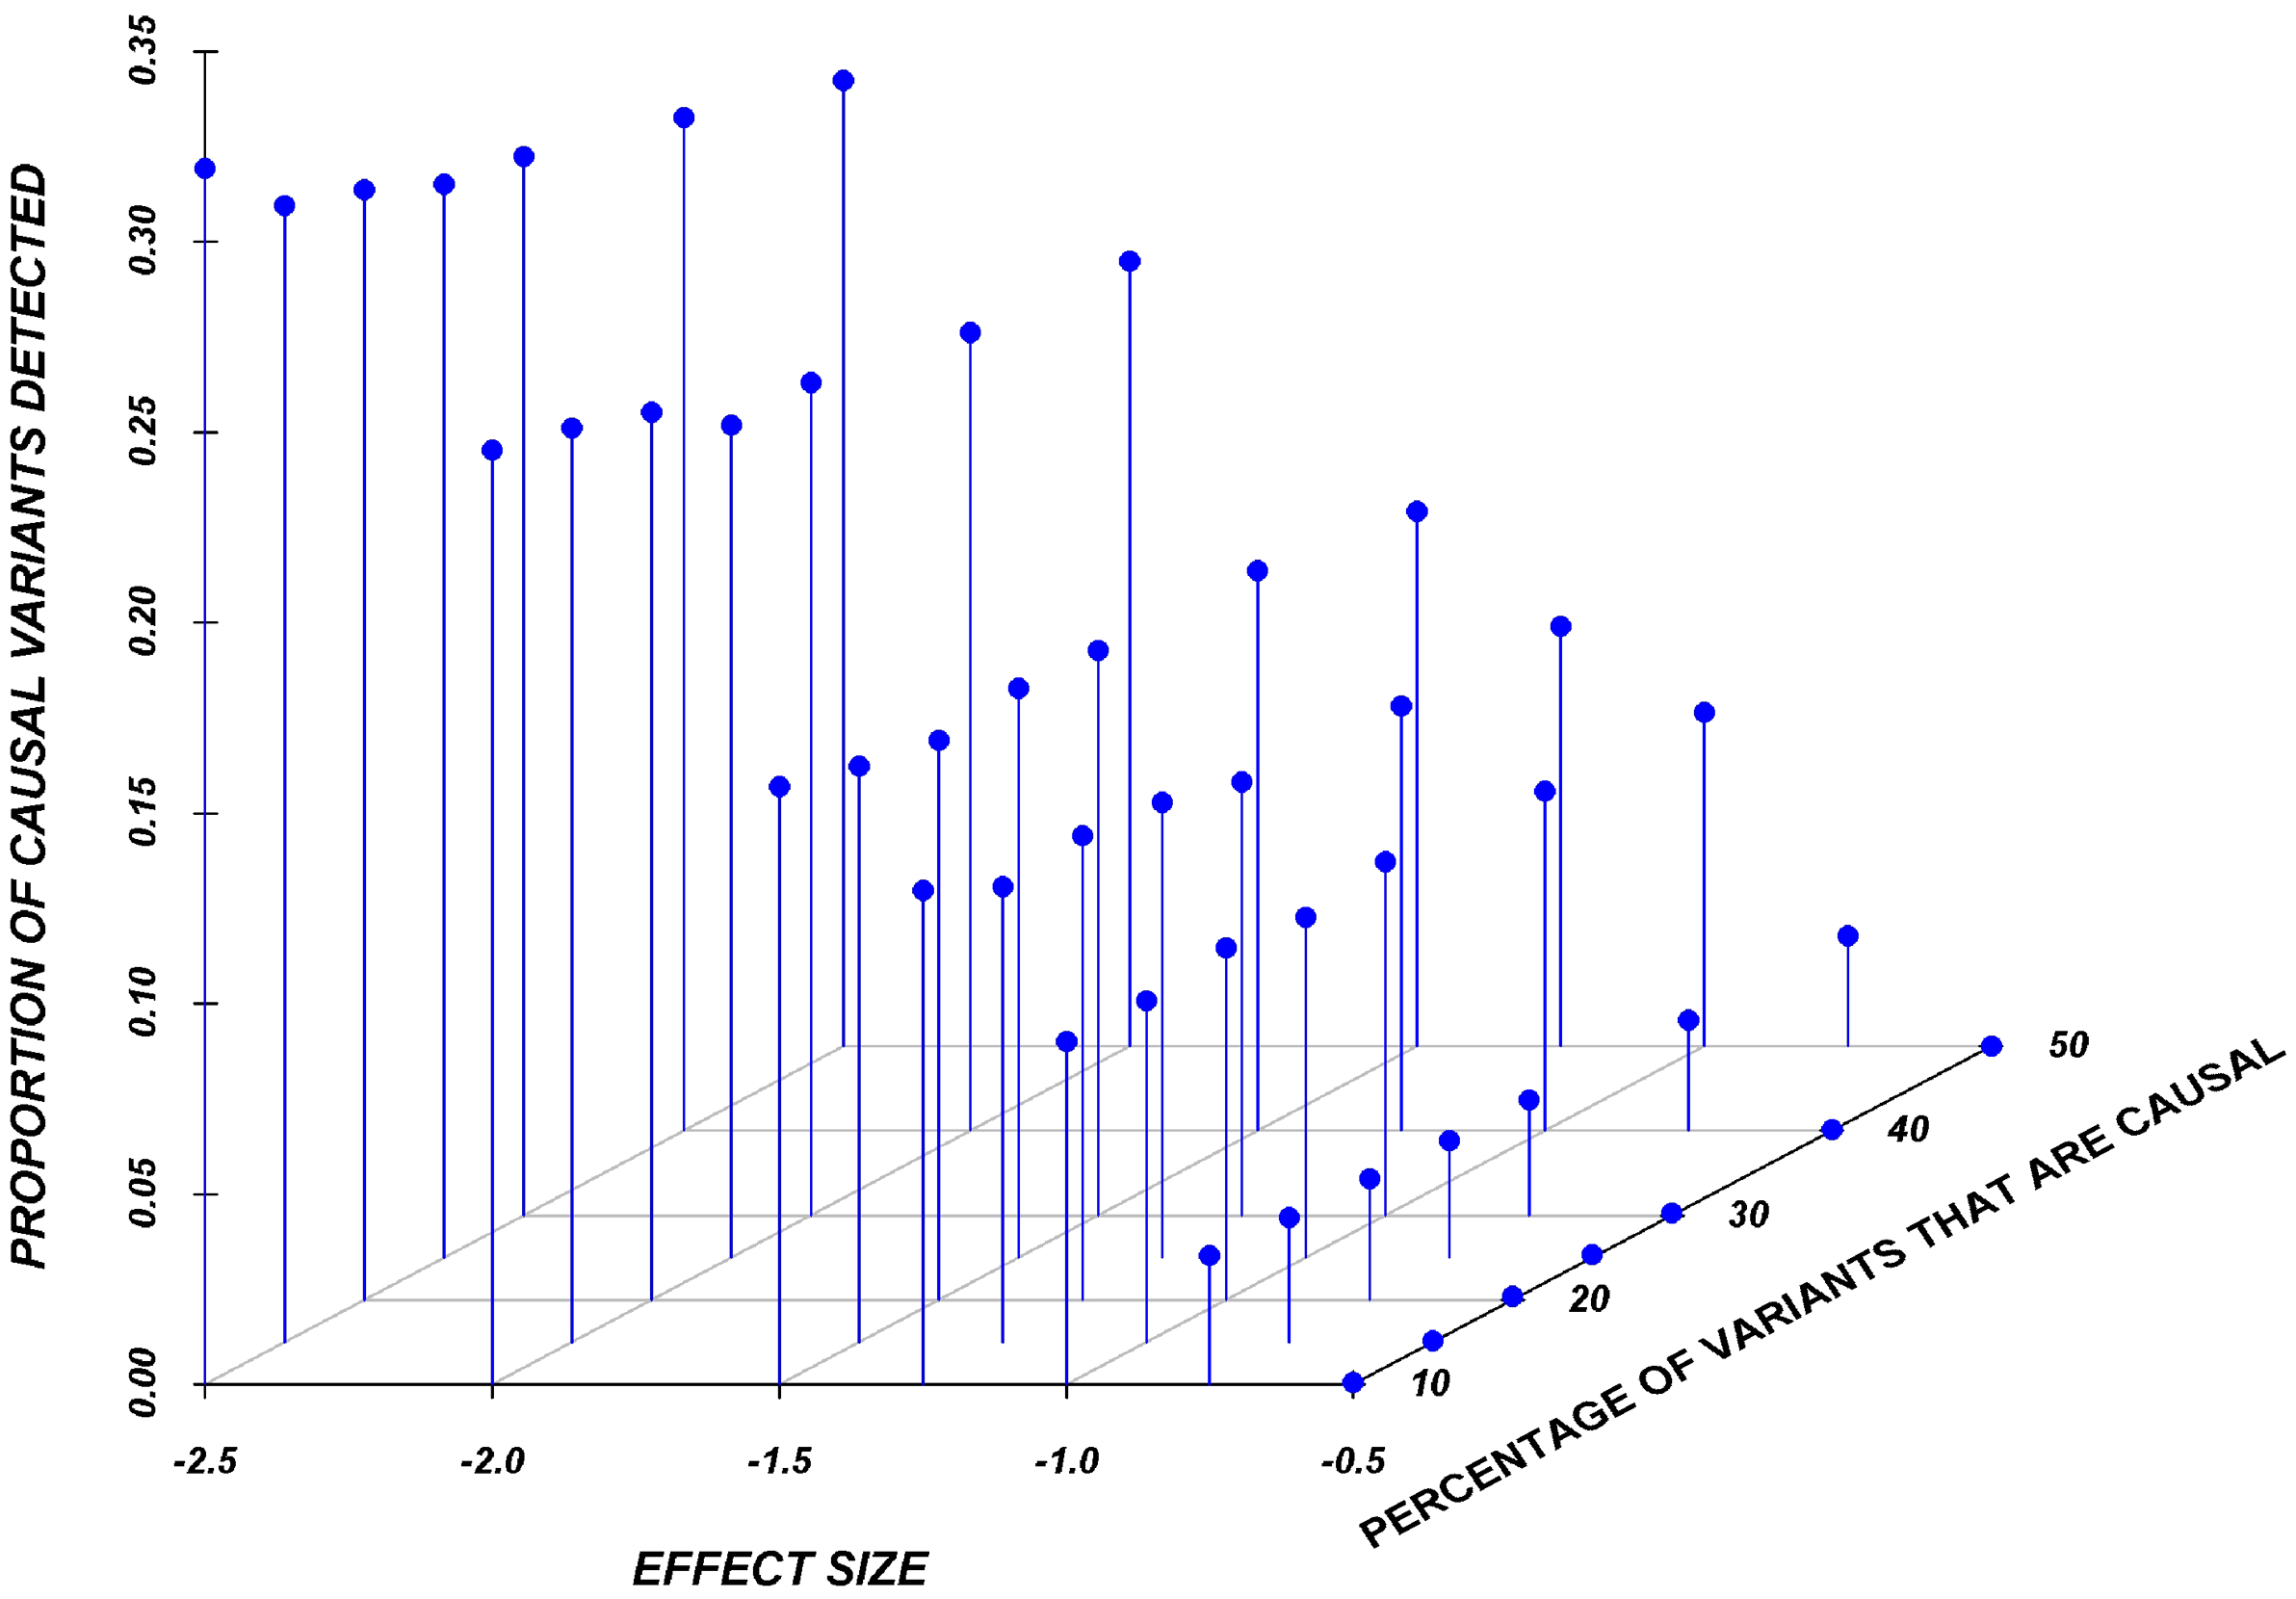 Proportion of causal variants reaching significance as a function of the average effect and proportion of causal variants on average in a gene, employing a SNP-by-SNP analysis.